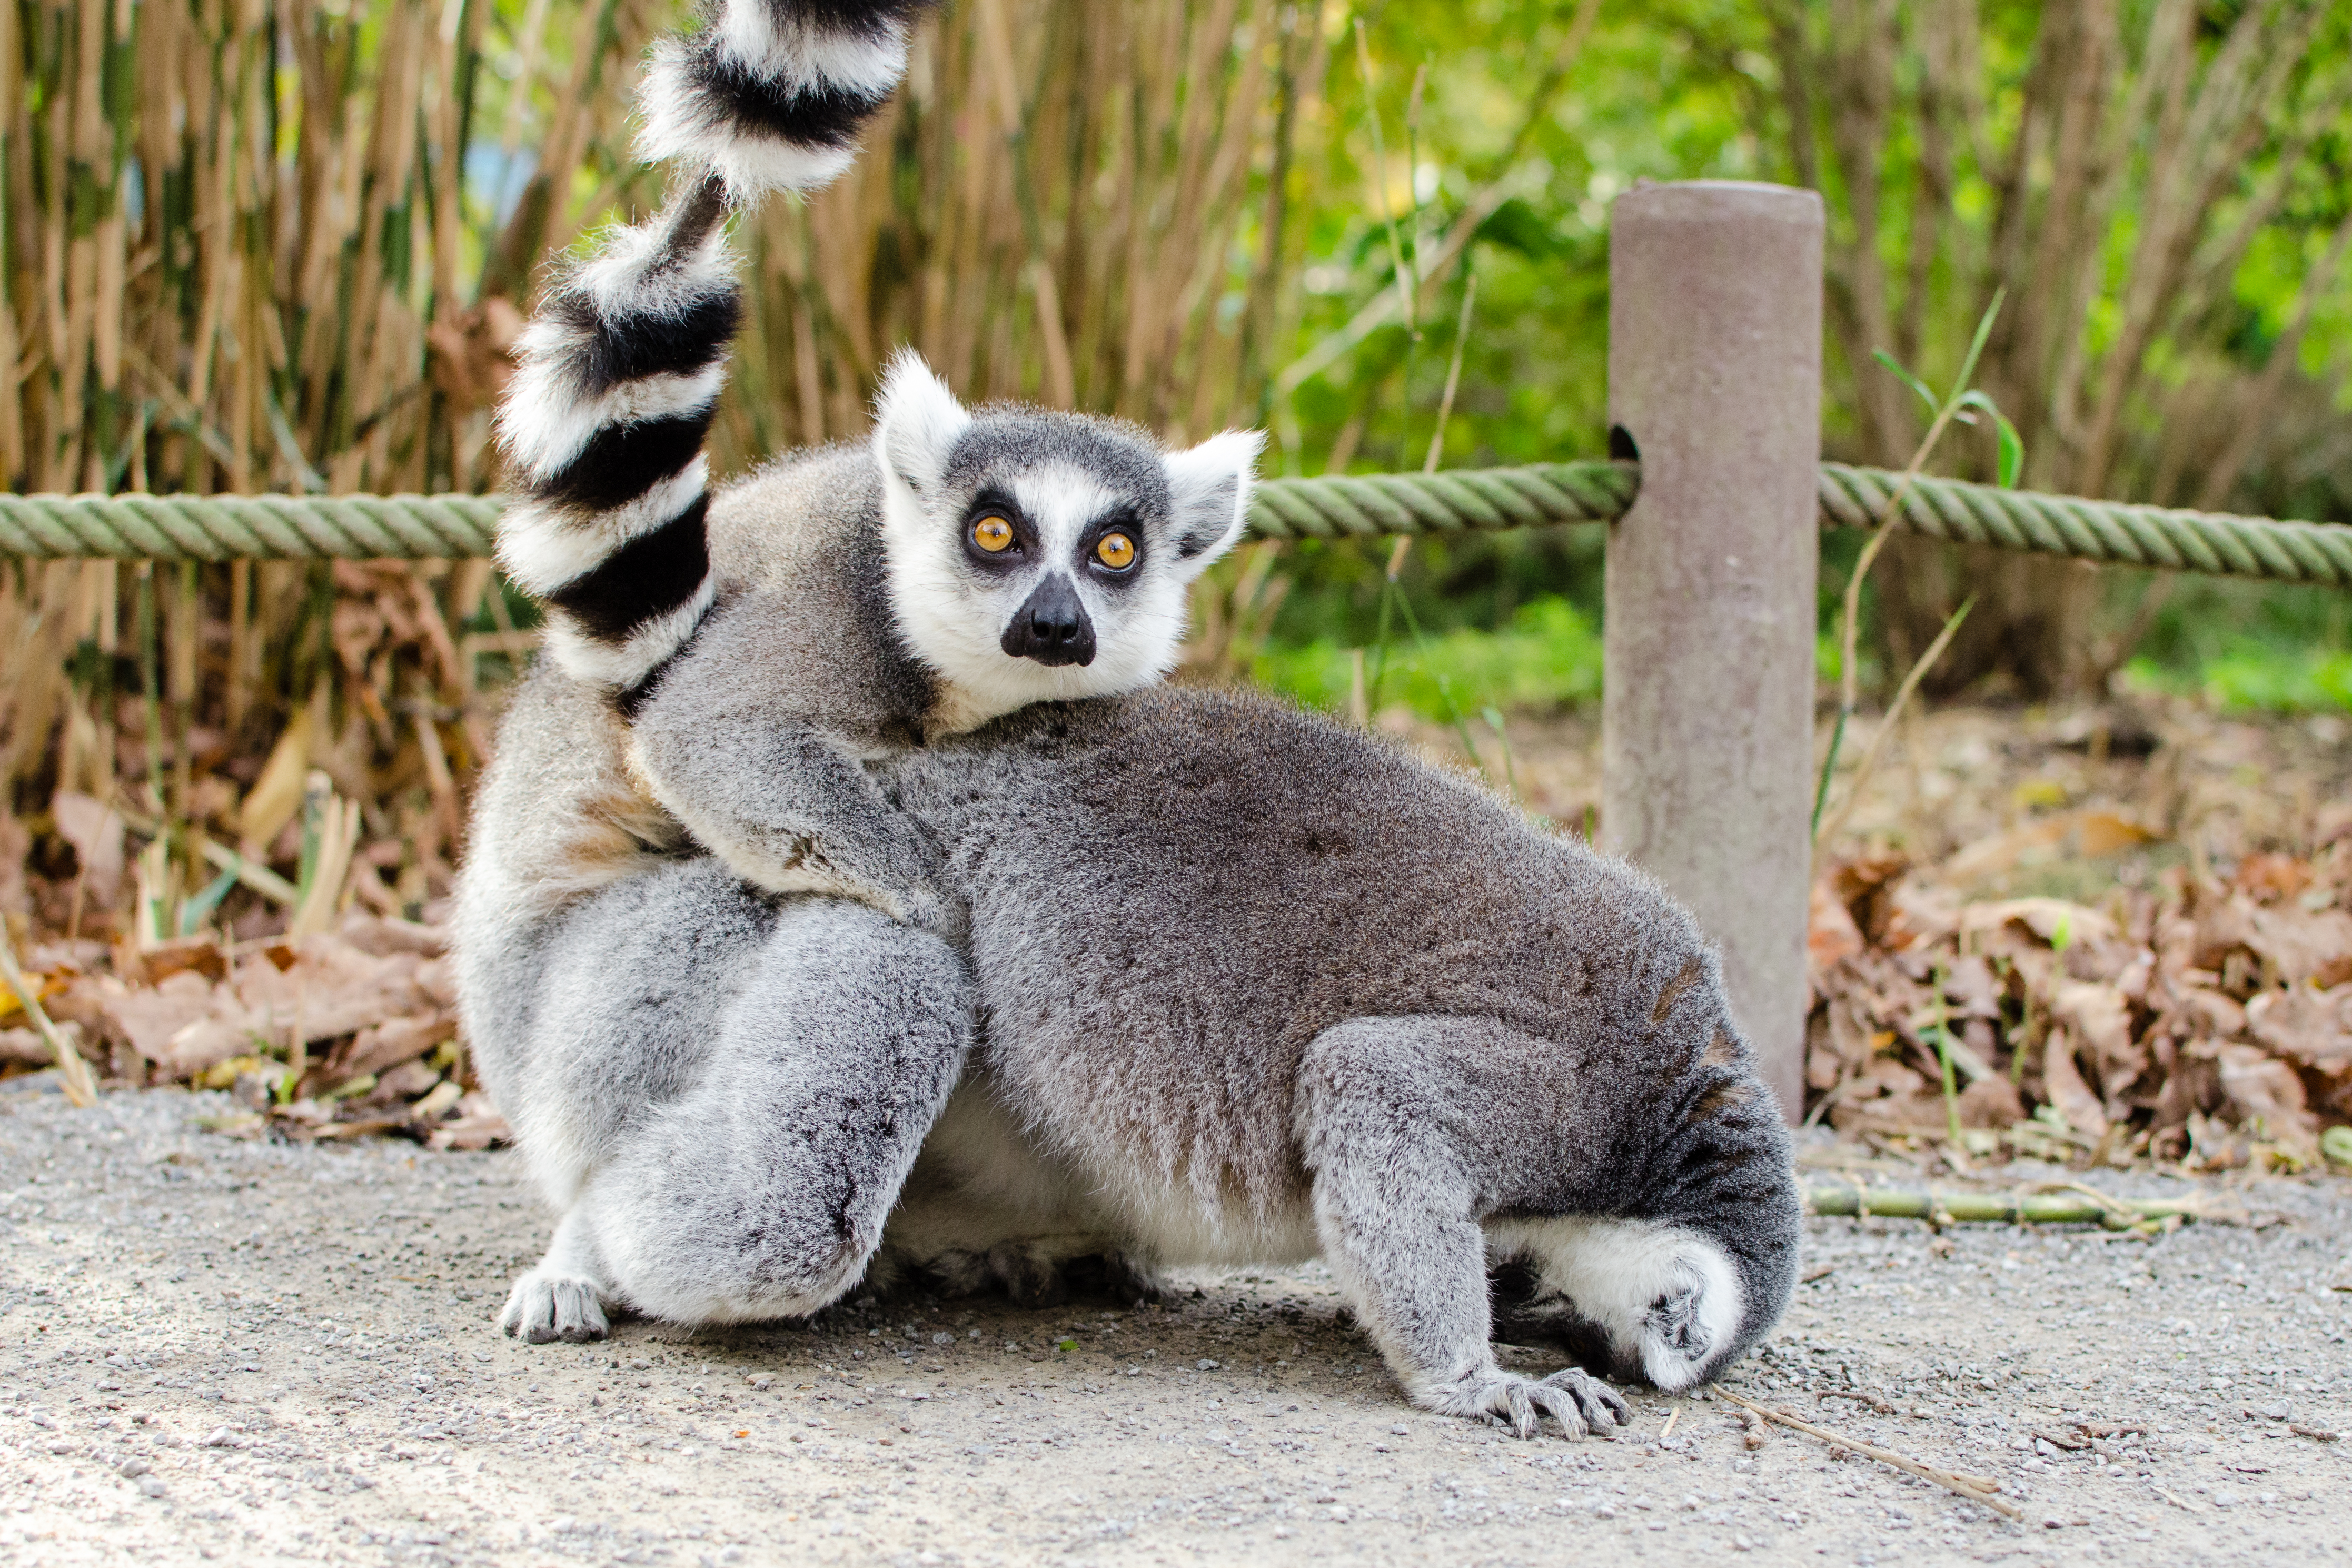 What? (Ring-tailed lemur), Adorable, Kattas, Tierpark, Tailed, HQ Photo